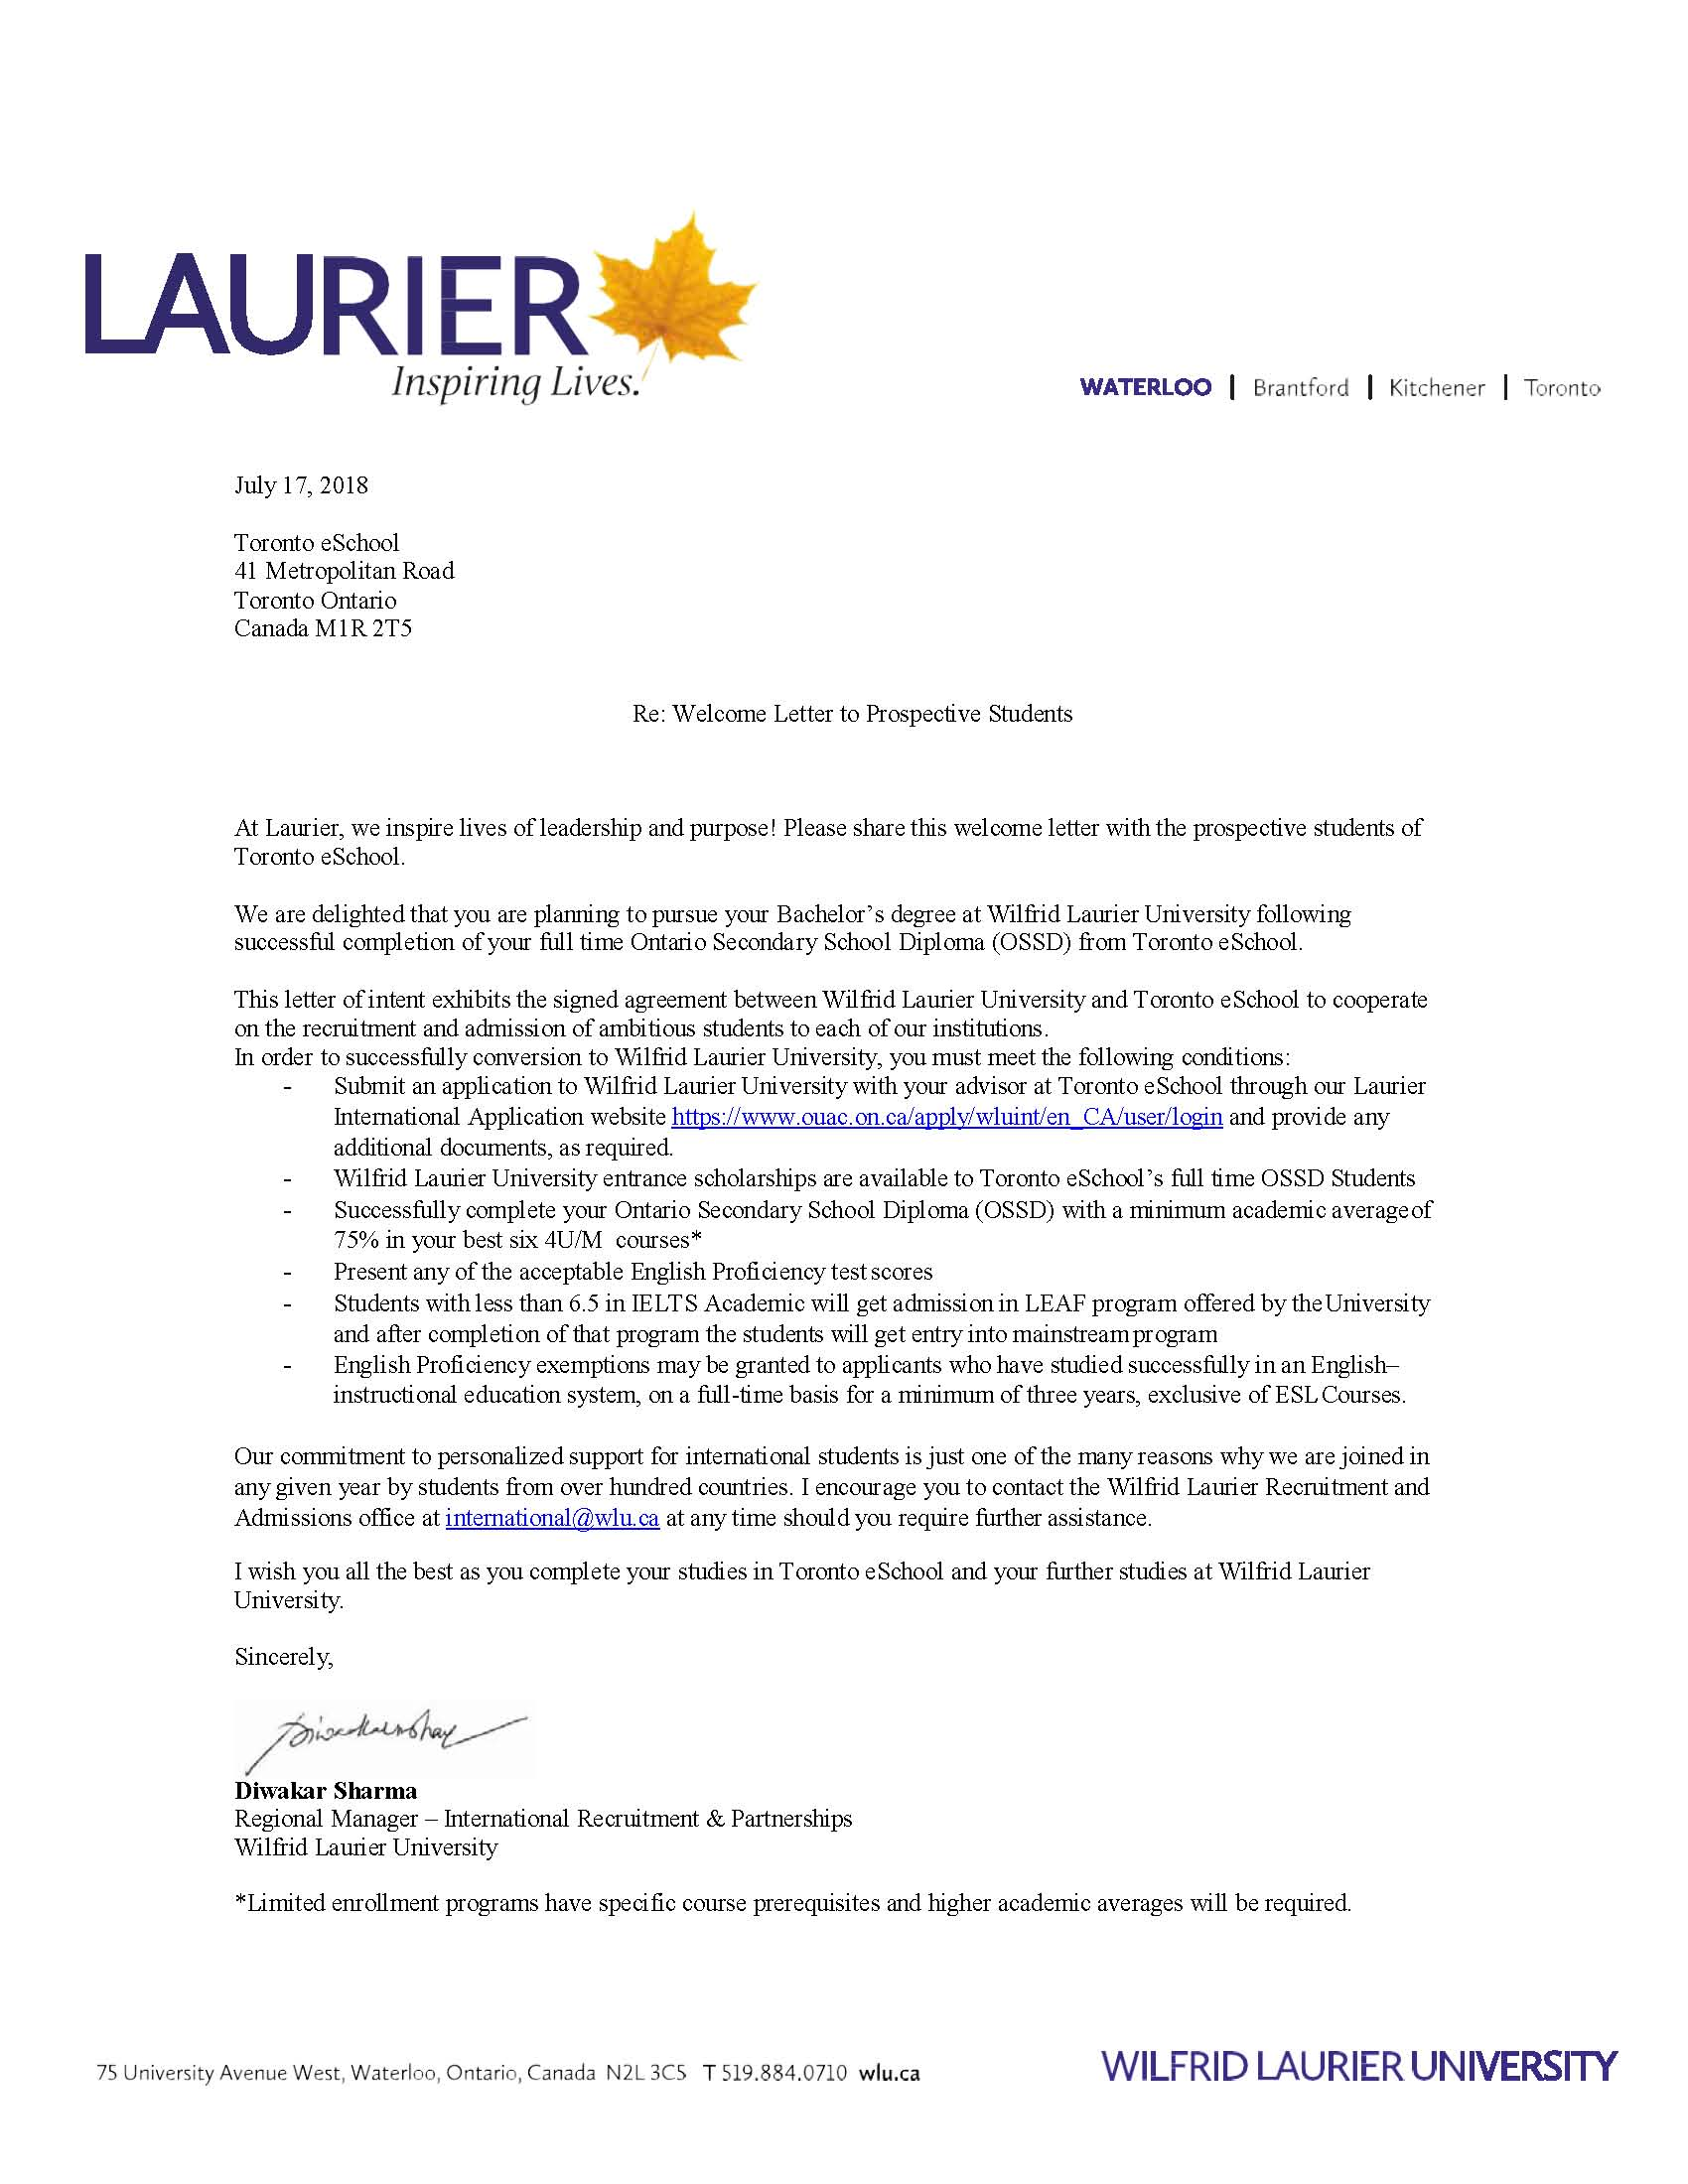 Laurier University Welcome Letter